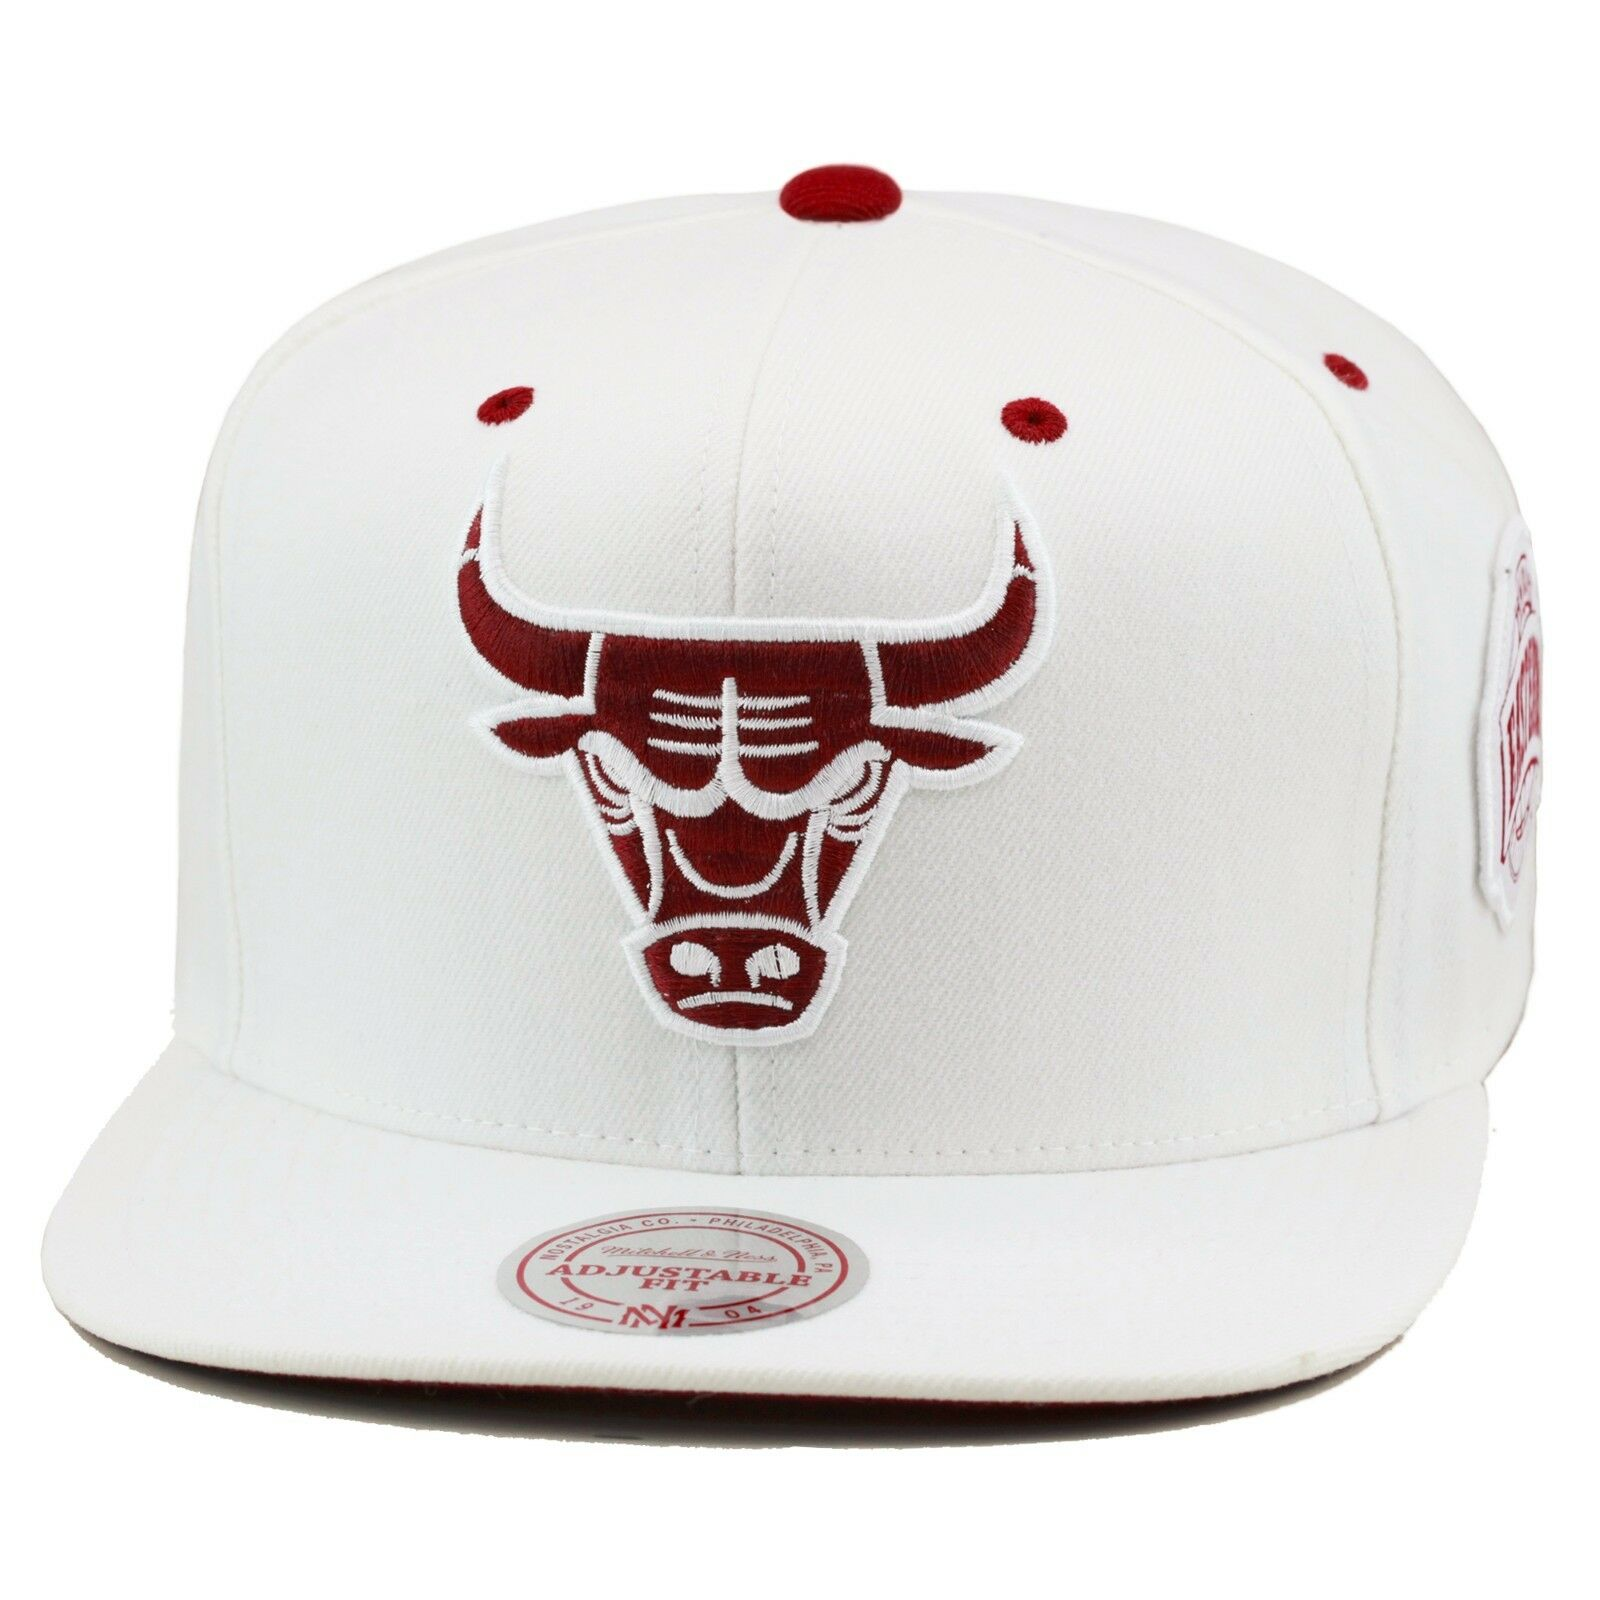 c54e9022f6b Mitchell   Ness Chicago Bulls Snapback Hat All White maroon for ...